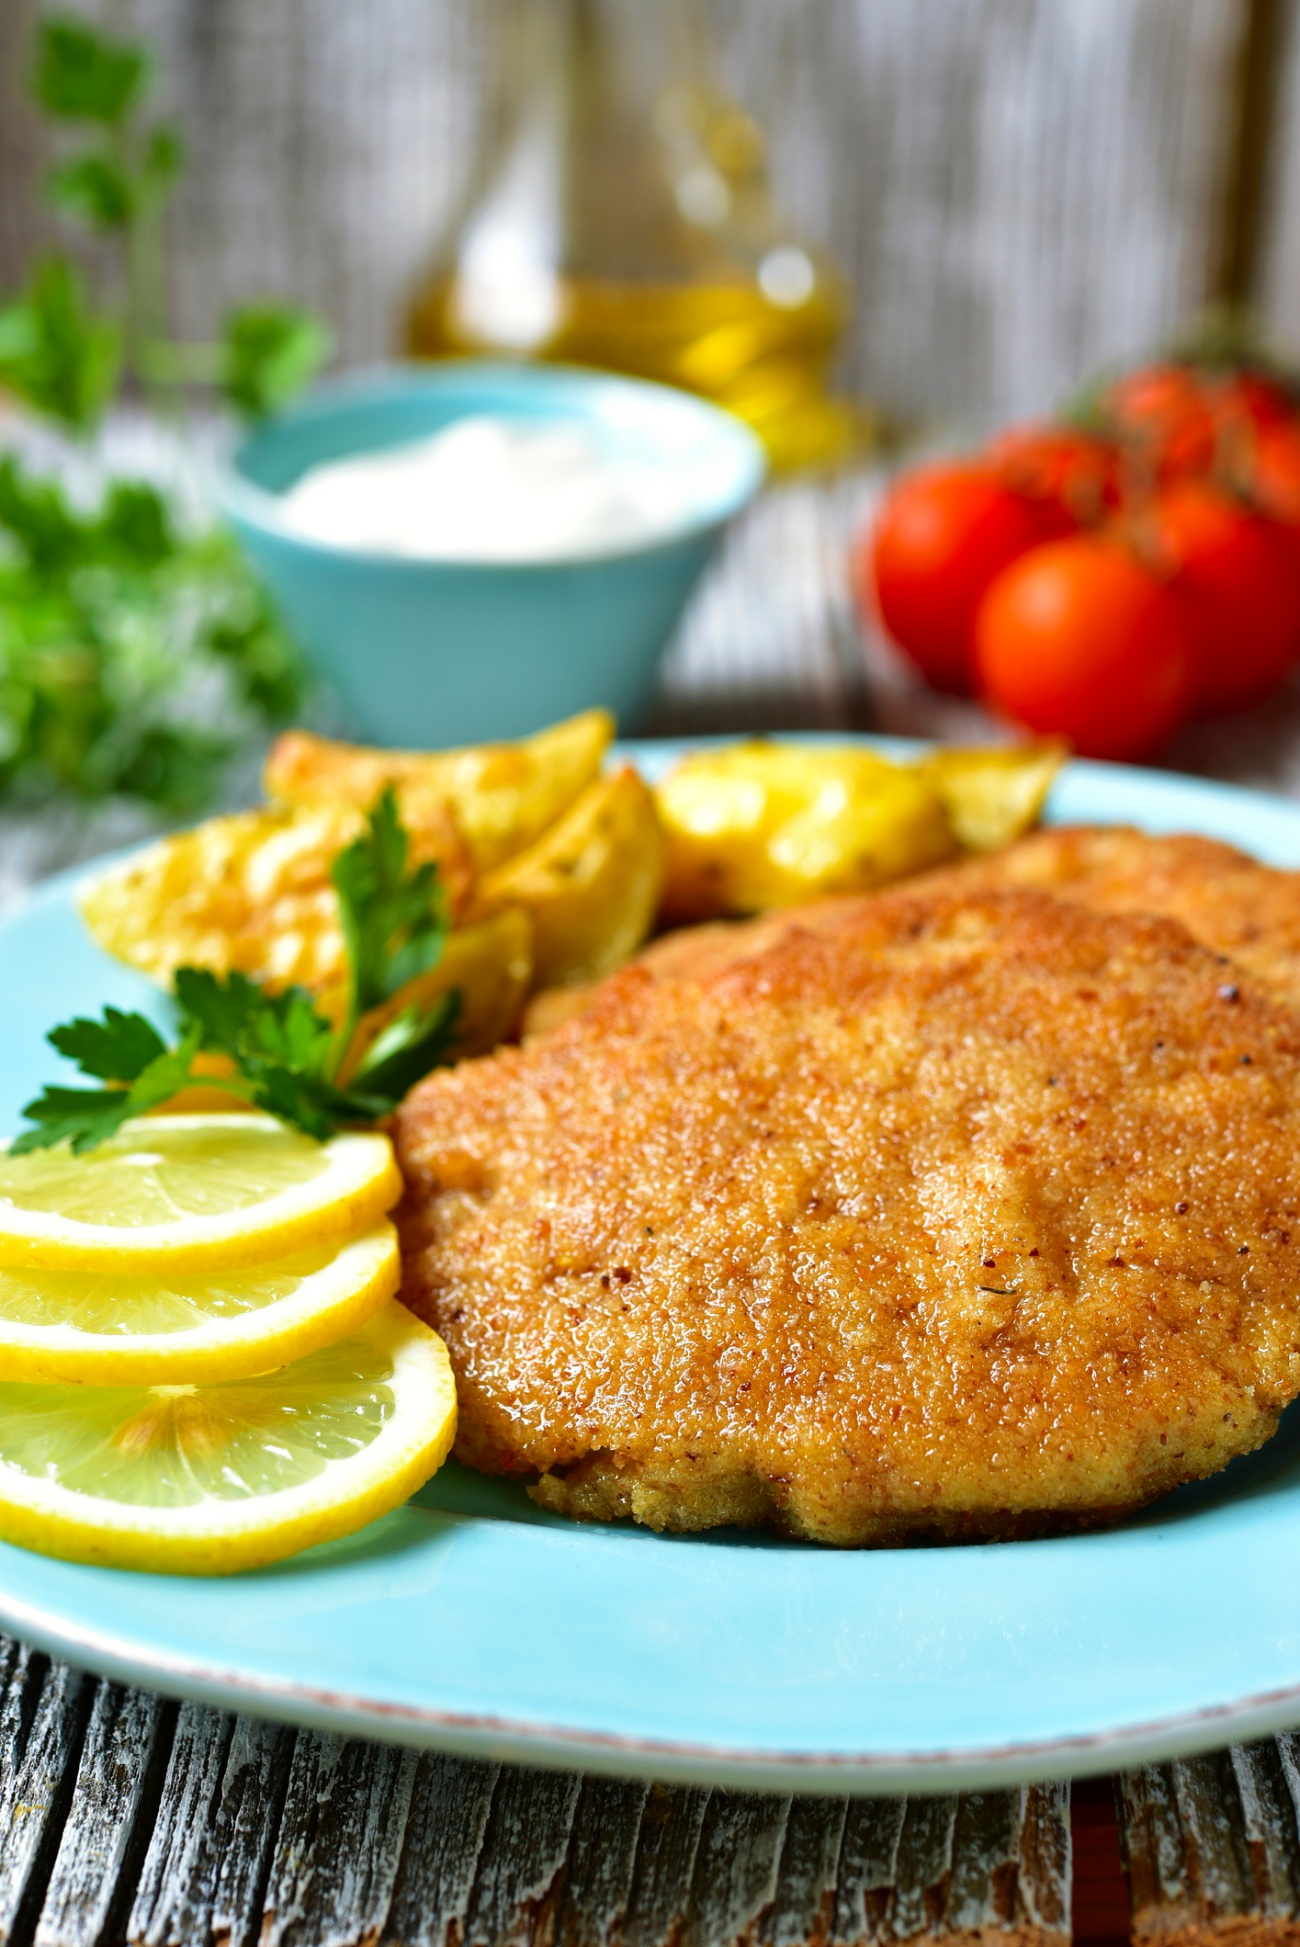 Viennese schnitzel on a blue plate.